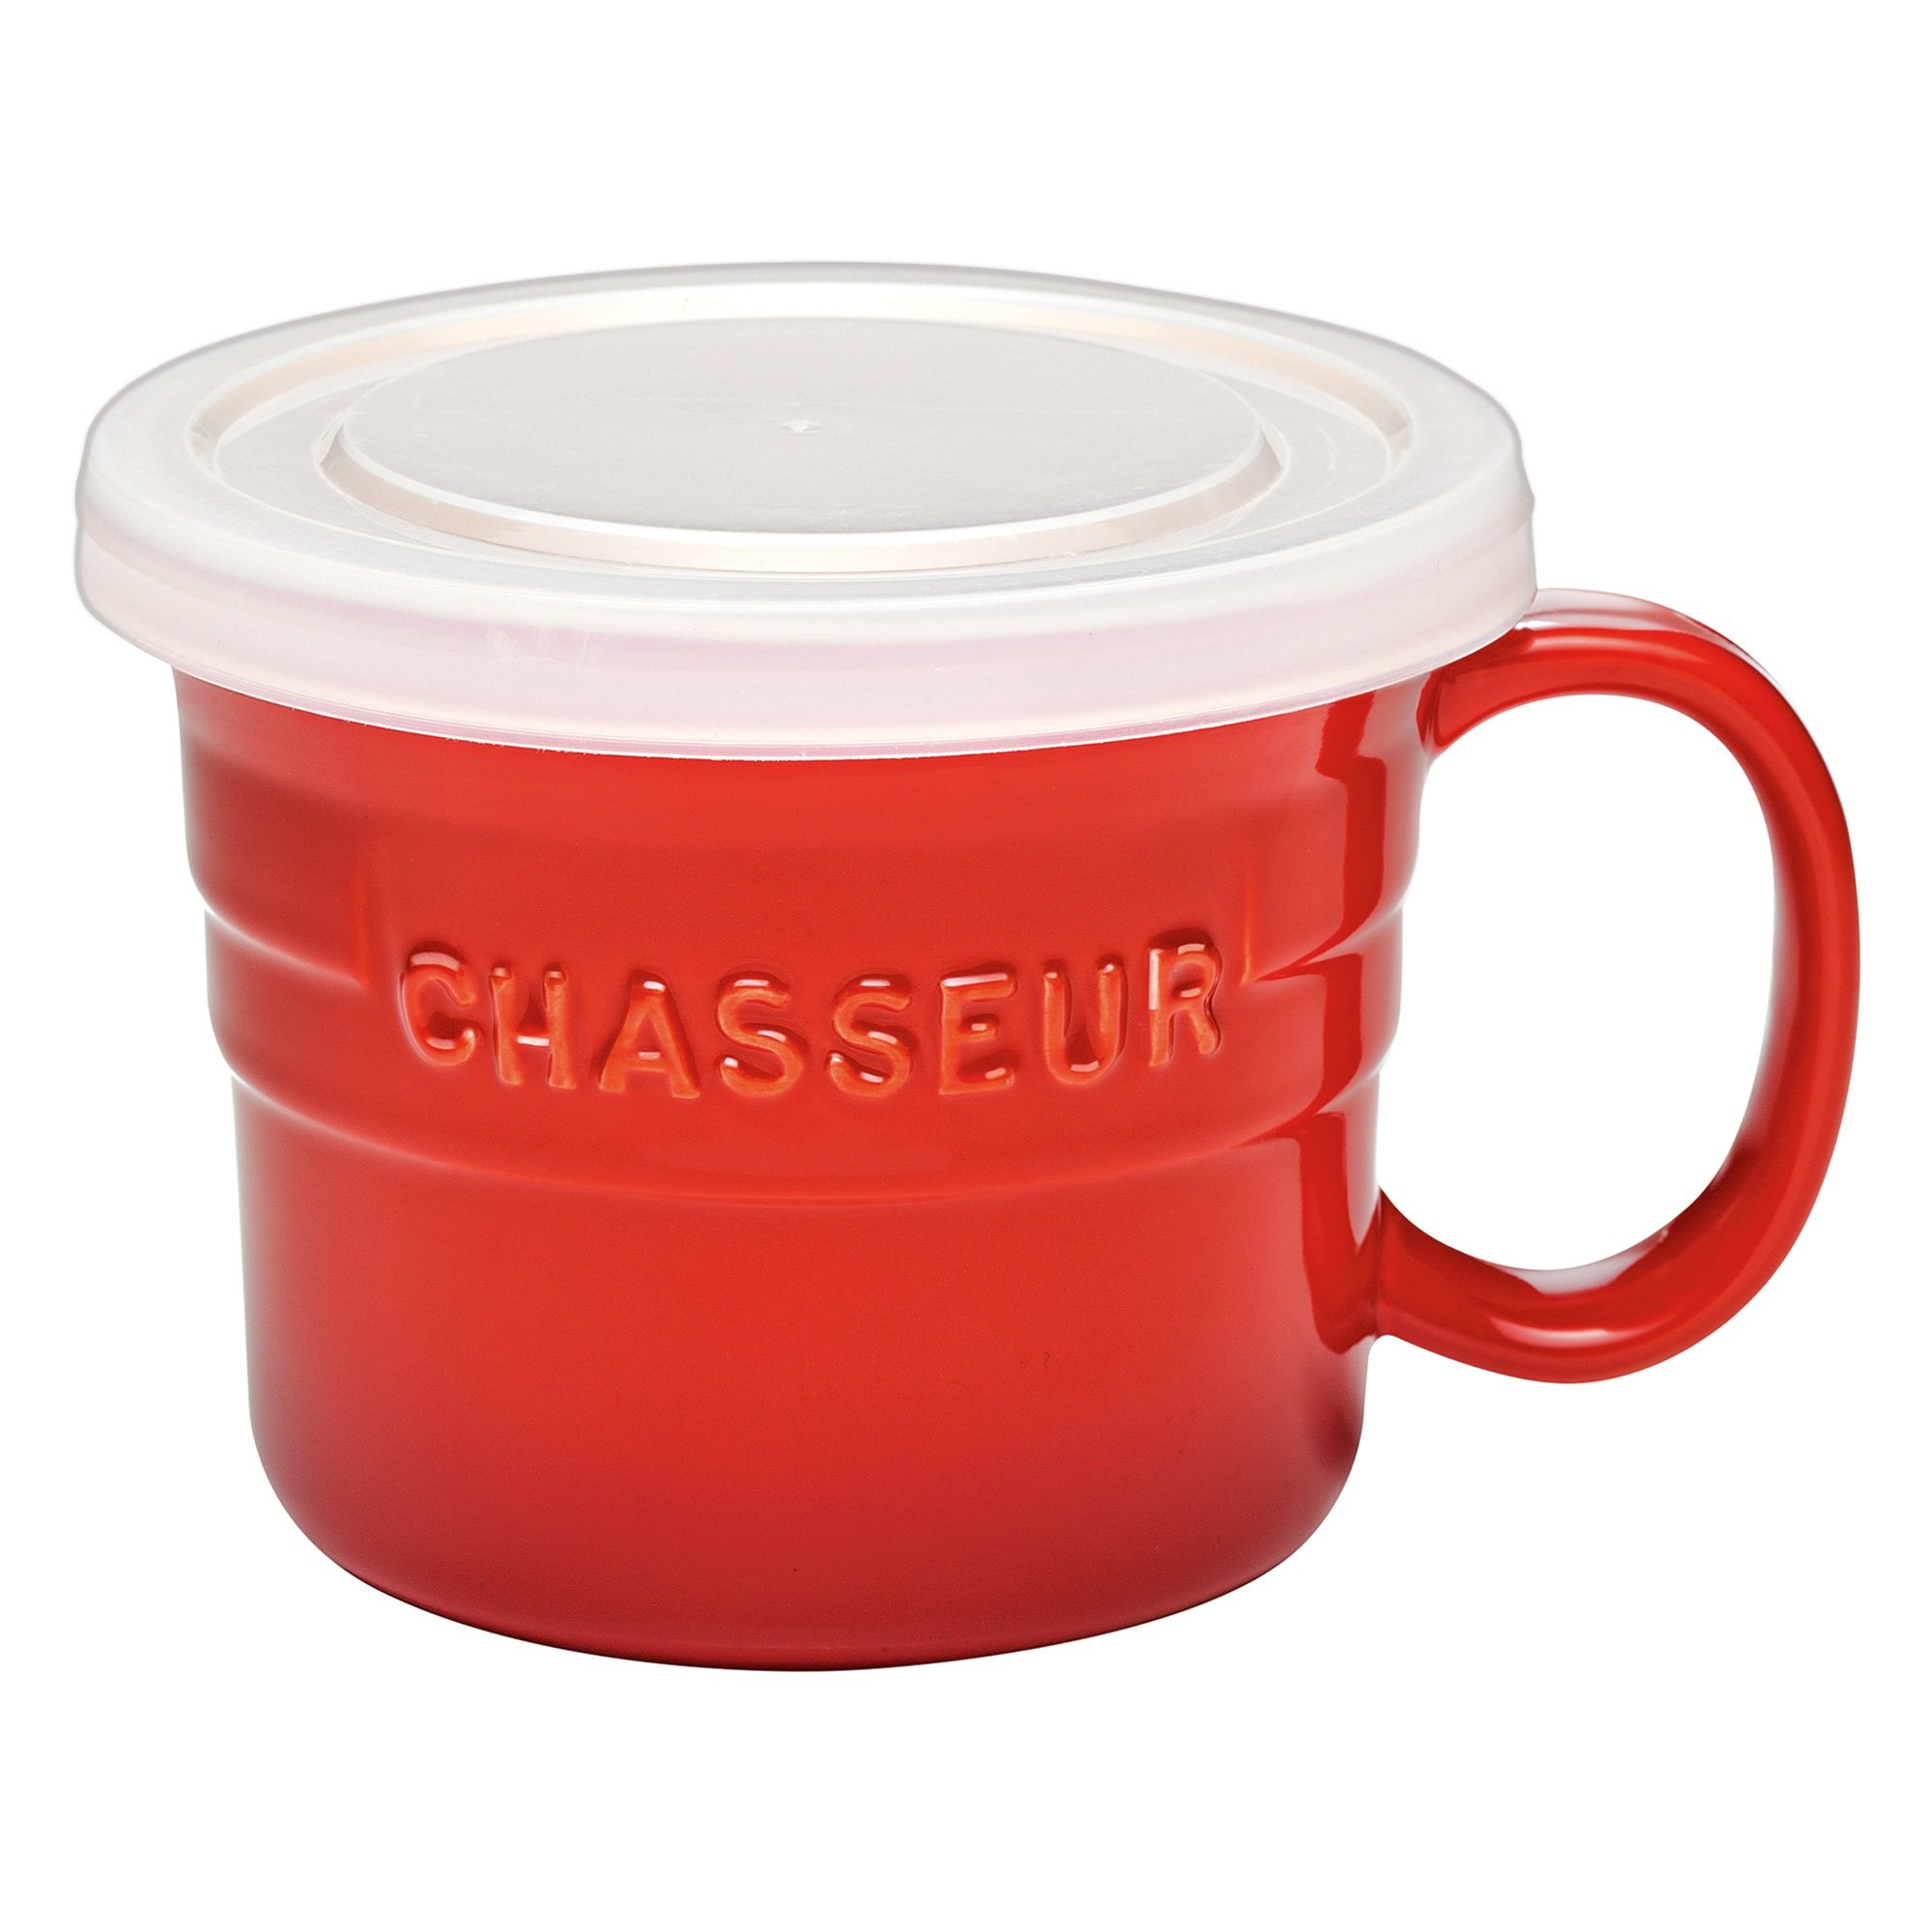 Chasseur La Cuisson 500ml Soup Mug with Lid - Red